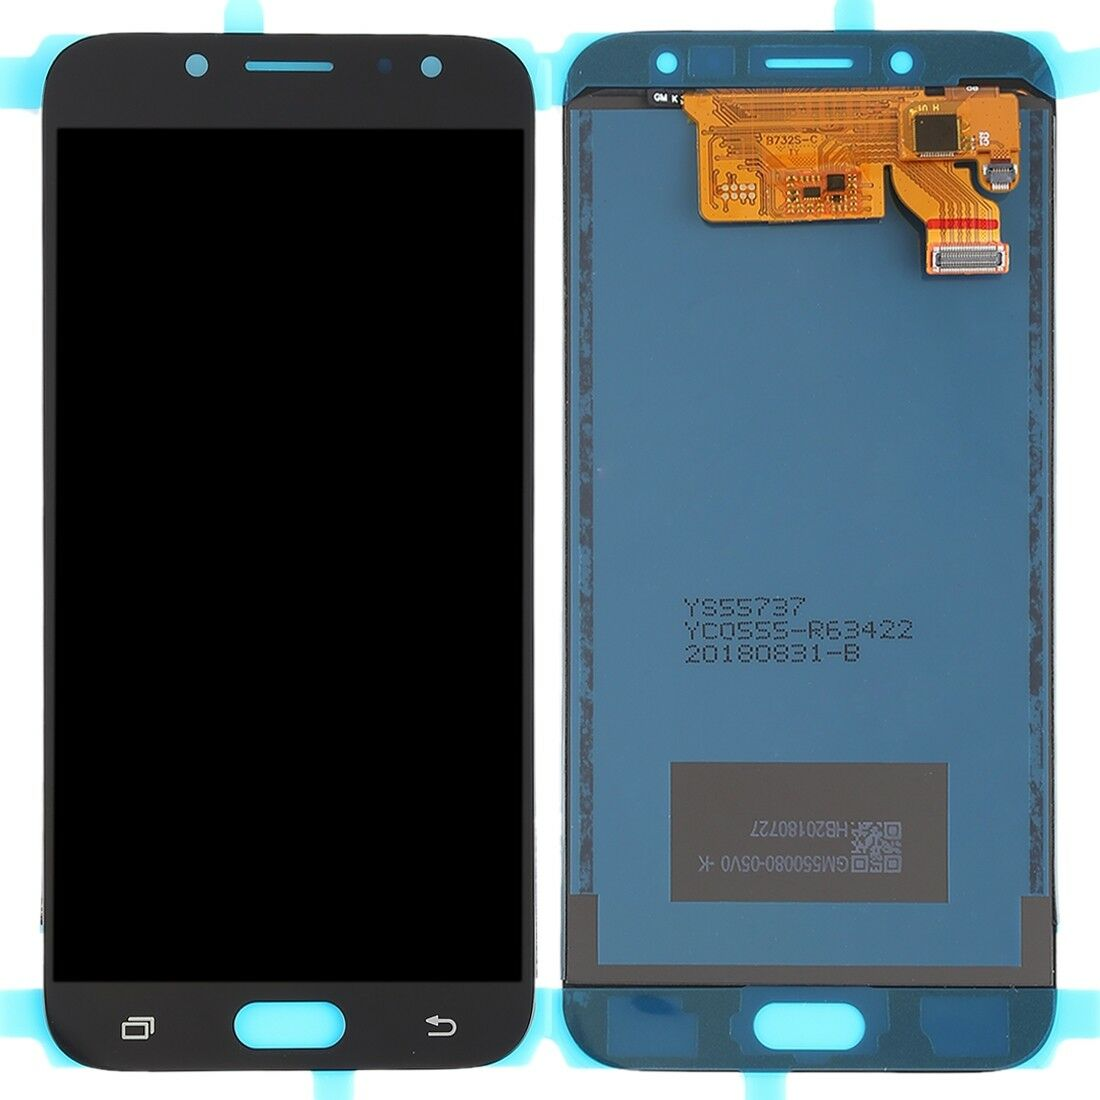 TOUCH SCREEN LCD DISPLAY NERO Samsung Galaxy J7 2017 J730 SM-J730F SM-J730F/DS+ kit 9 in 1 biadesivo e colla b7000